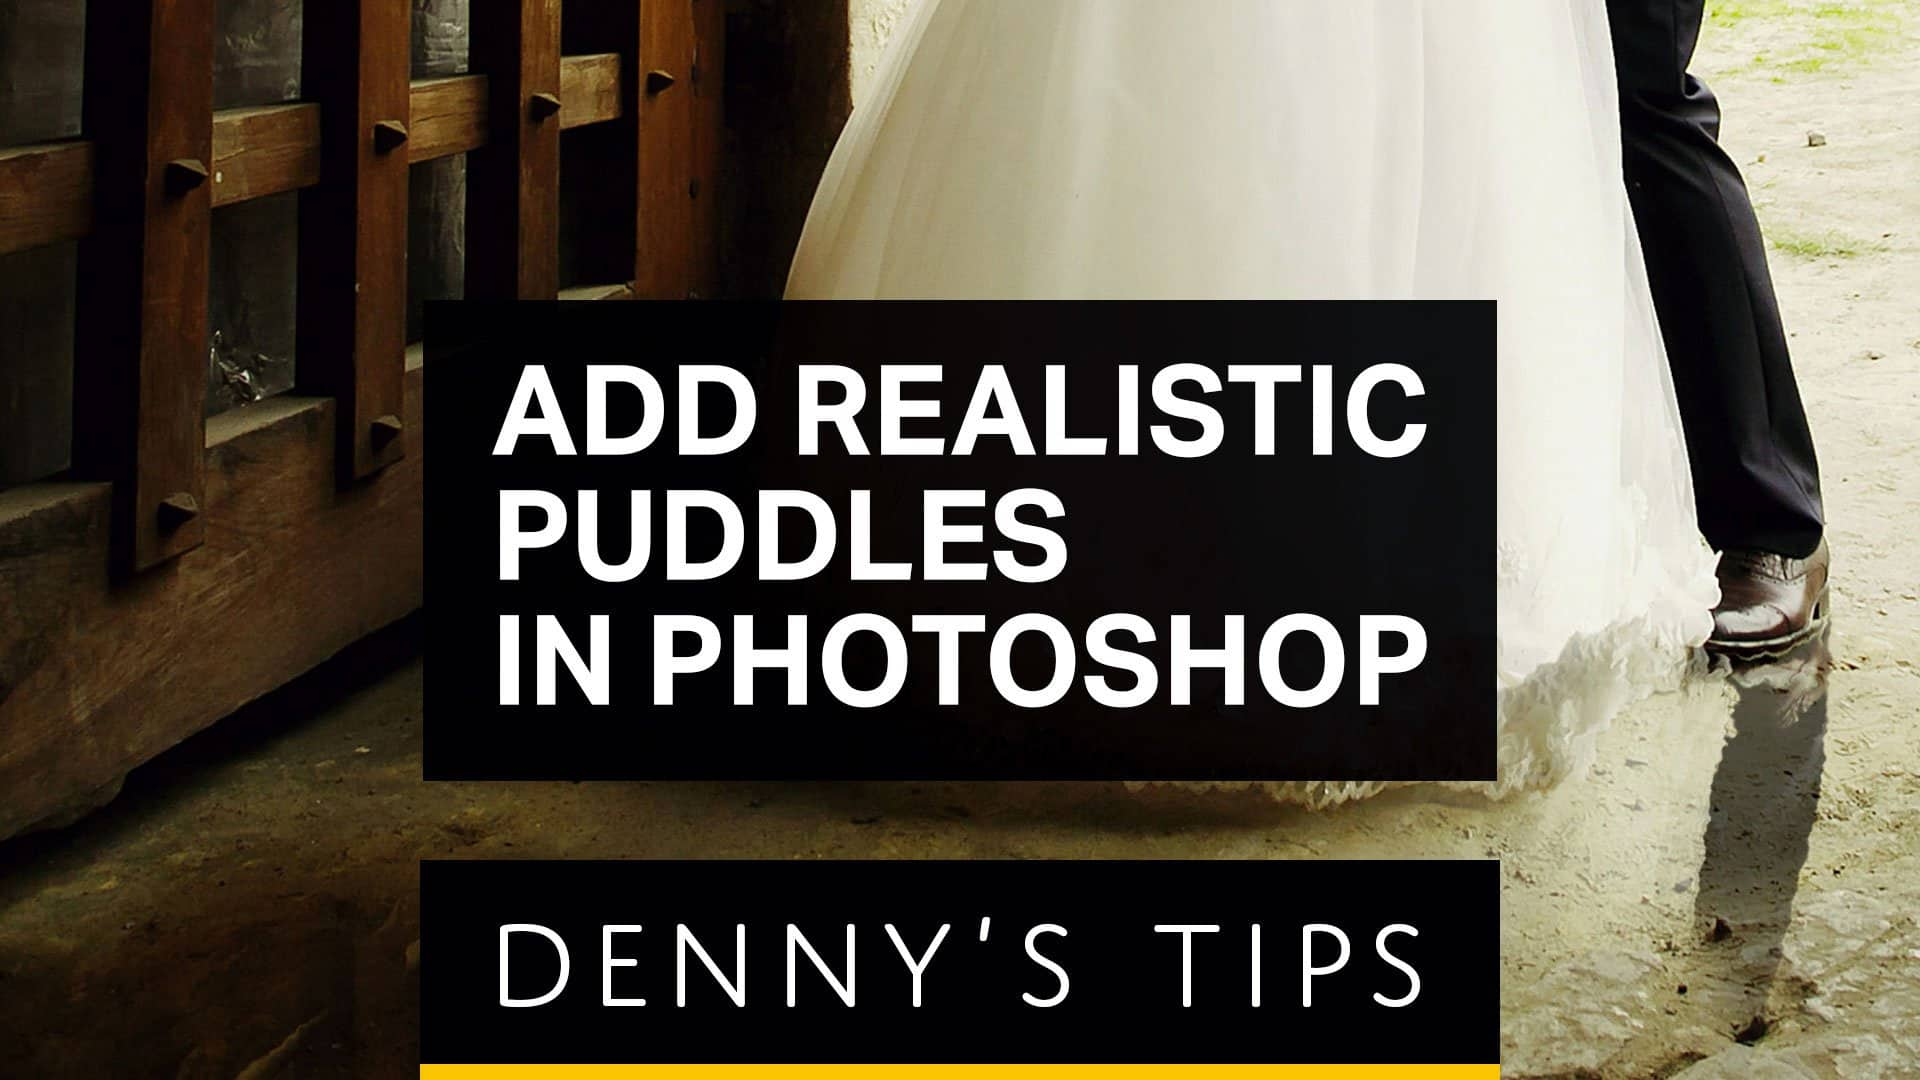 How to Add Photorealistic Puddles in Photoshop